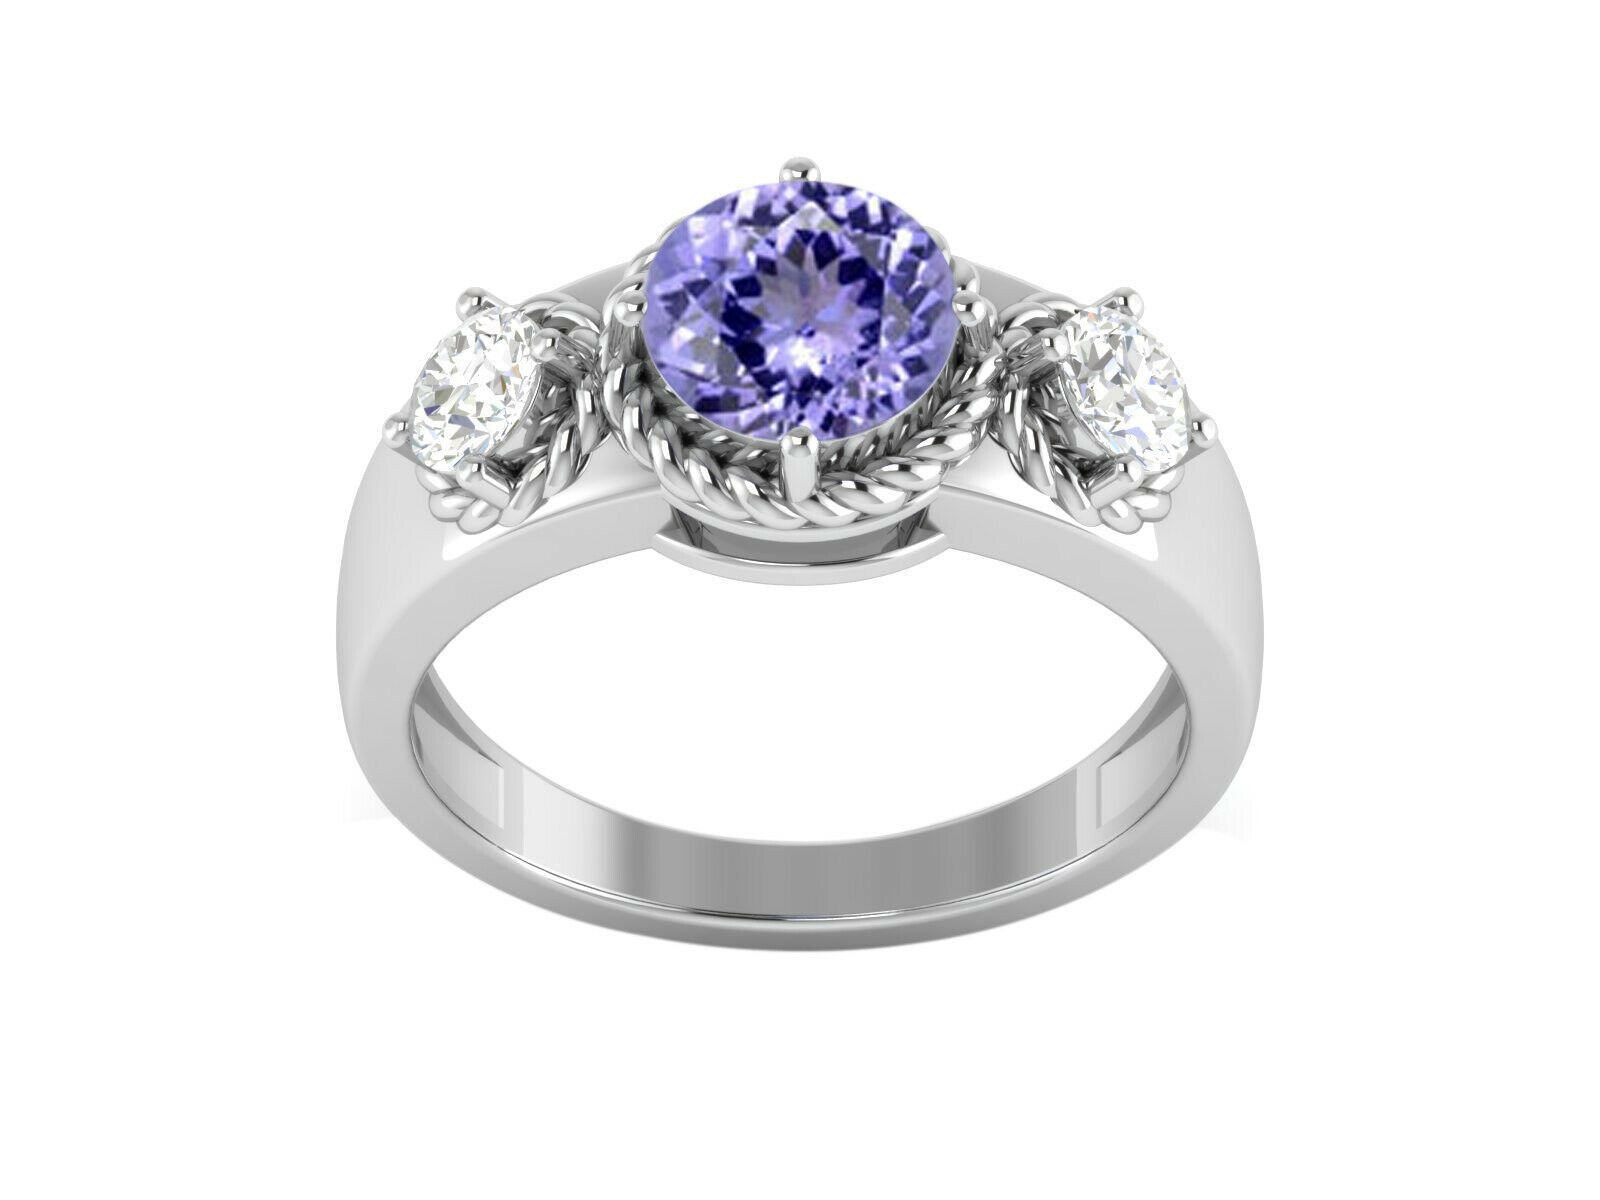 Primary image for 2.93 Ctw Tanzanite Color Gemstone Solitaire Accents Women Ring 925 Fine Silver